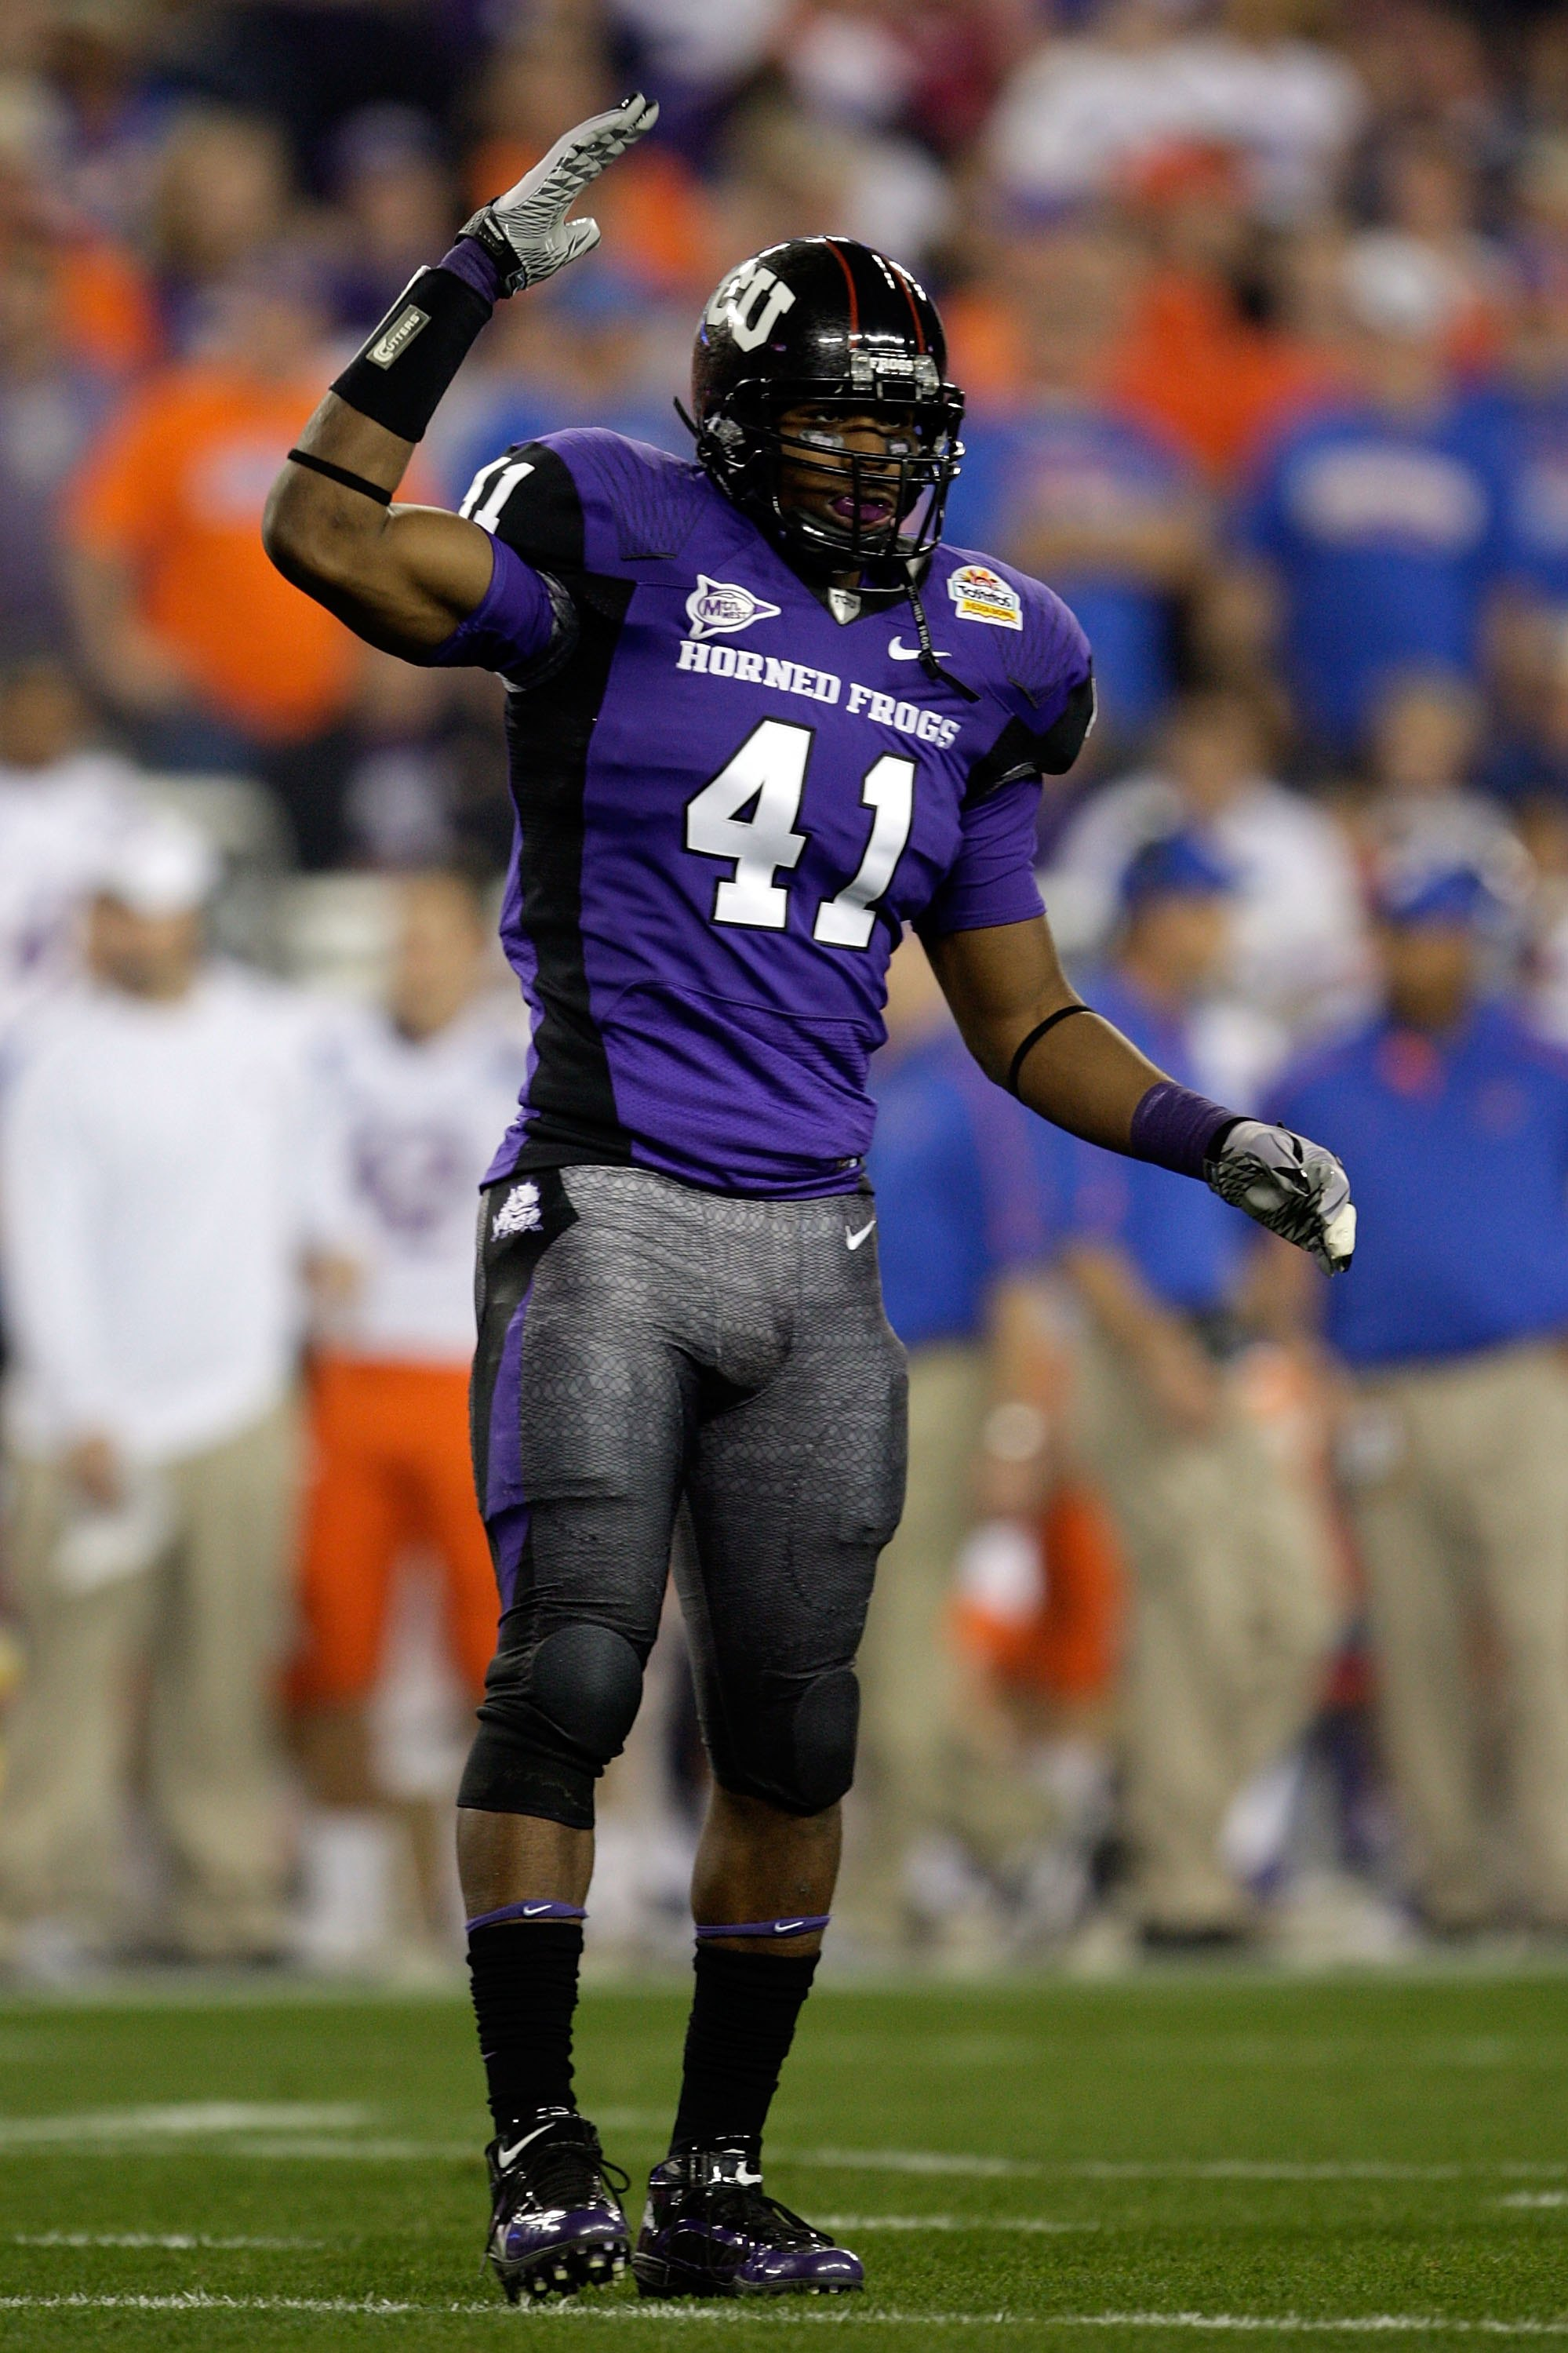 GLENDALE, AZ - JANUARY 04:  Daryl Washington #41 of the TCU Horned Frogs reacts against the Boise State Broncos during the Tostitos Fiesta Bowl at the Universtity of Phoenix Stadium on January 4, 2010 in Glendale, Arizona.  (Photo by Jamie Squire/Getty Im